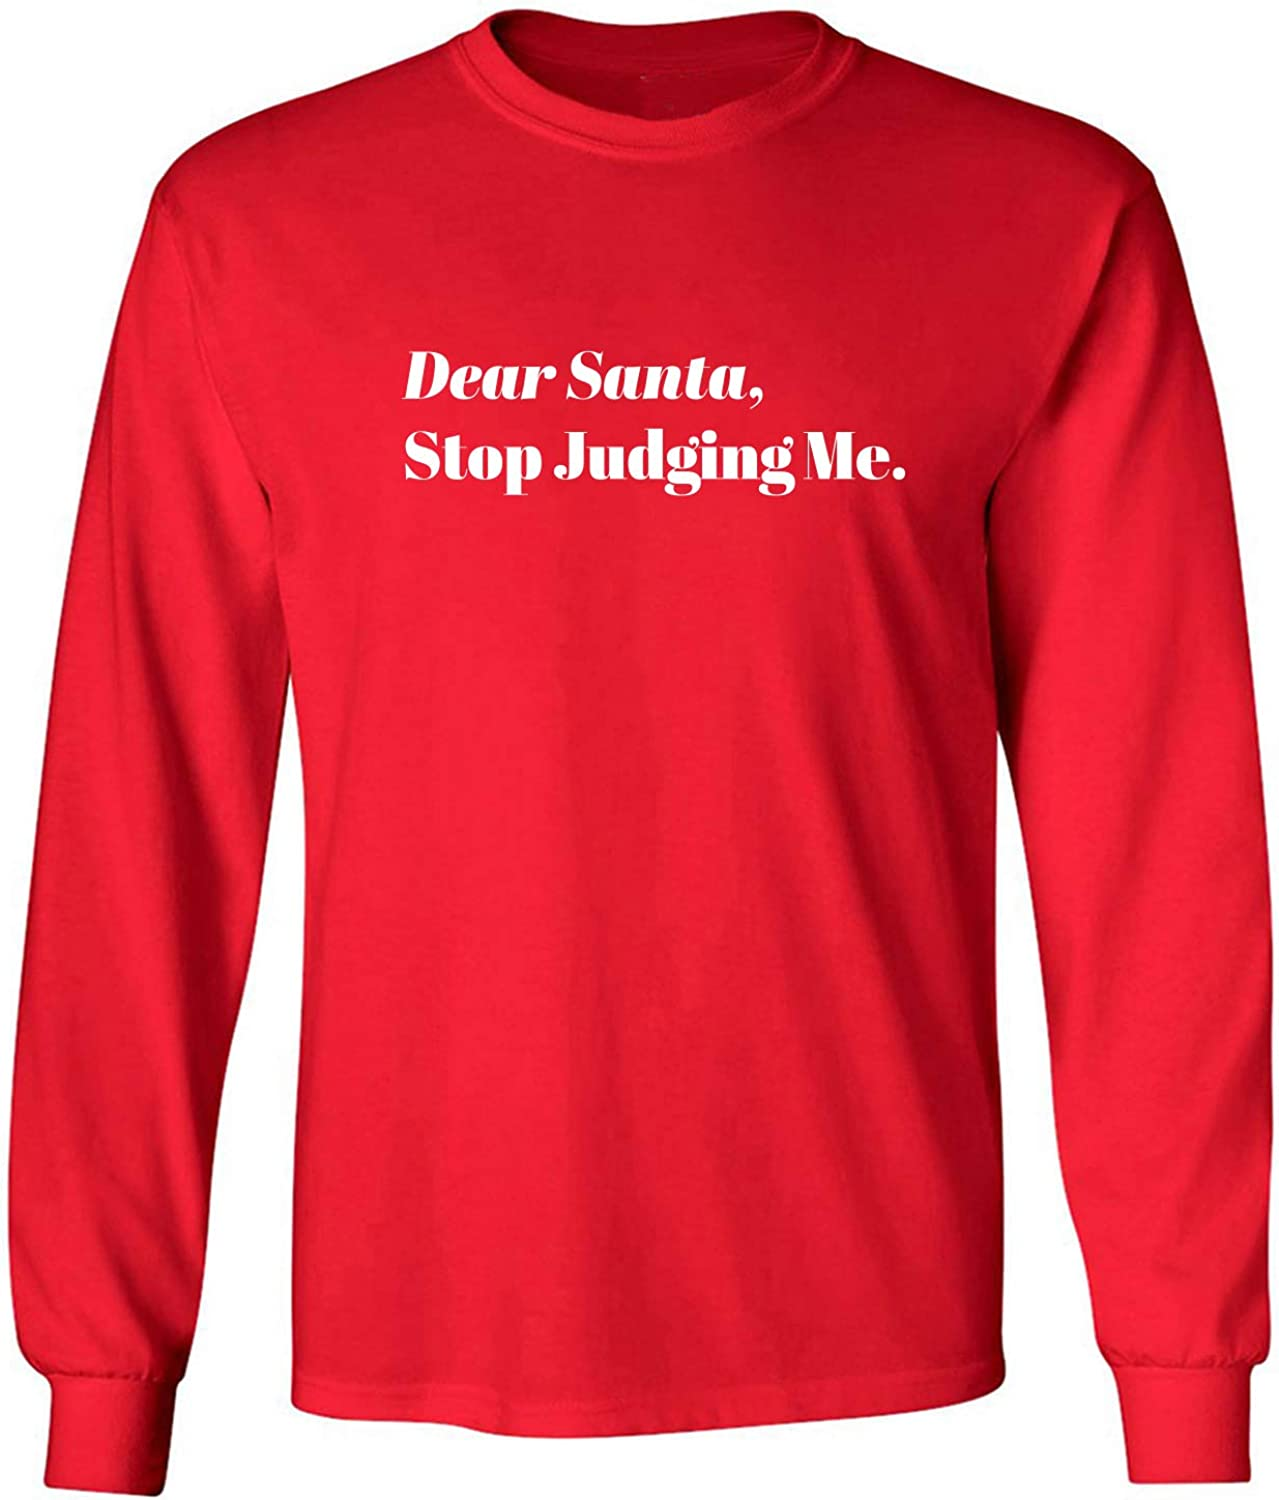 Dear Santa, Stop Judging Me. Adult Long Sleeve T-Shirt in Red - XXXXX-Large